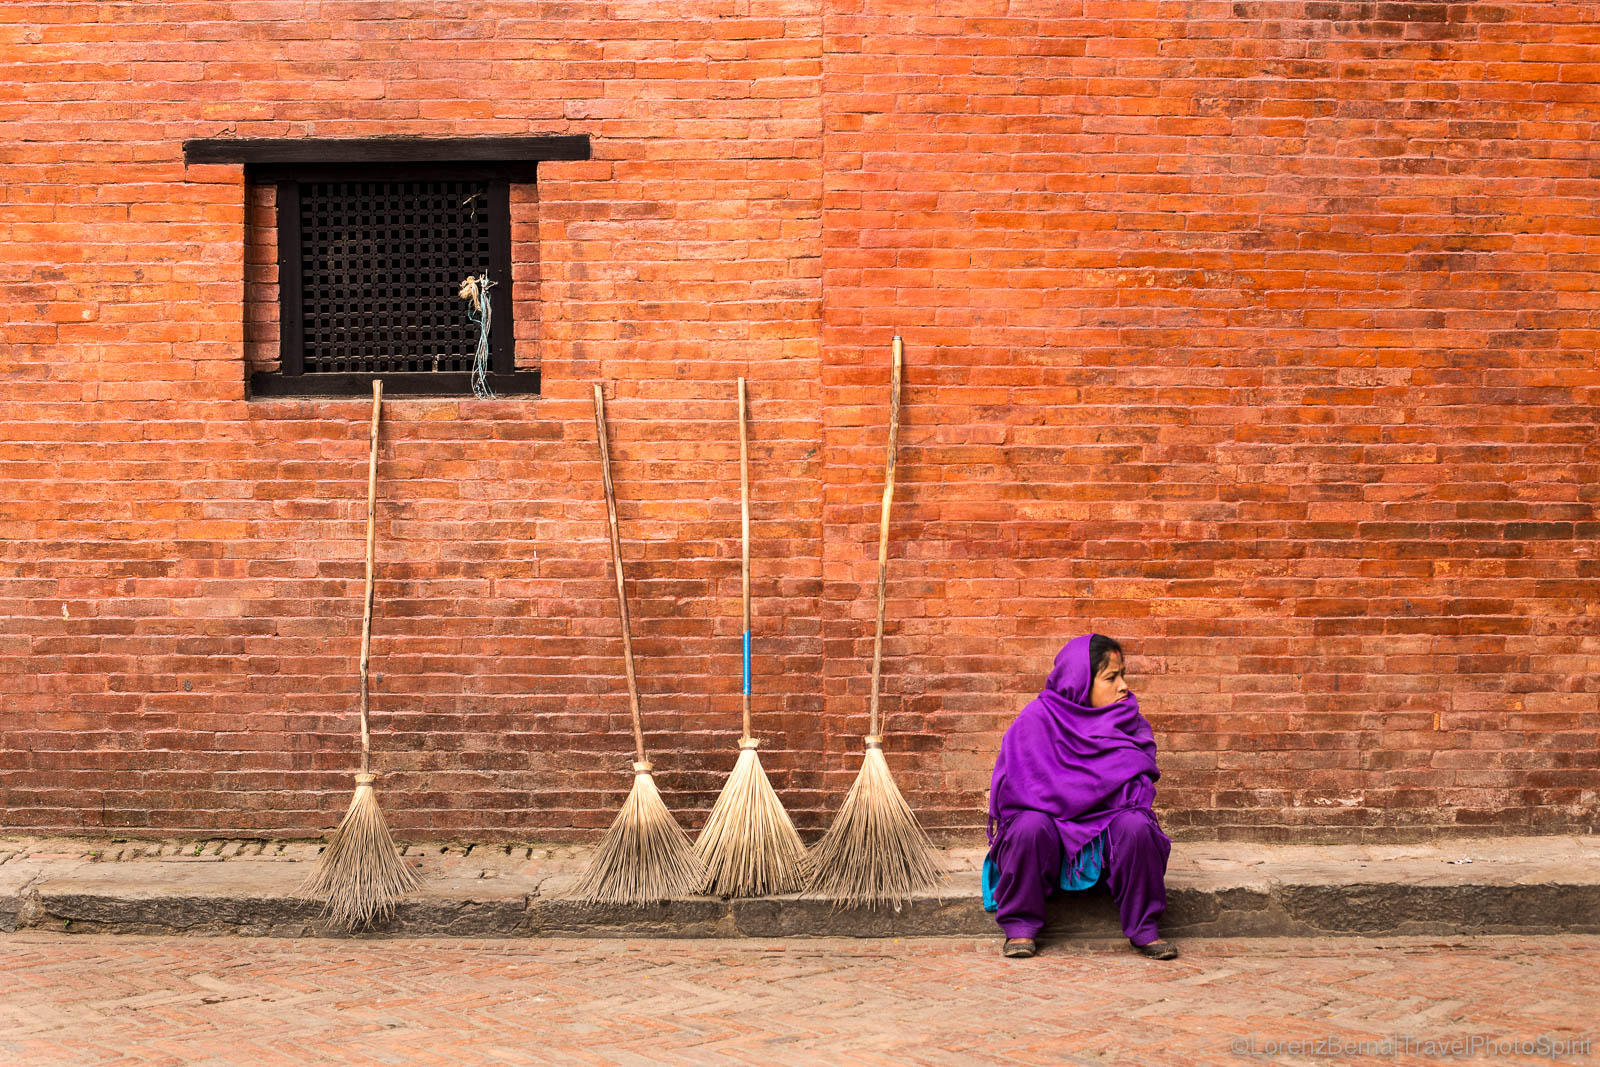 Street scene in Patan : a woman is sitting against the wall of a newari style house, next to the brooms she hopes to sell in the day.